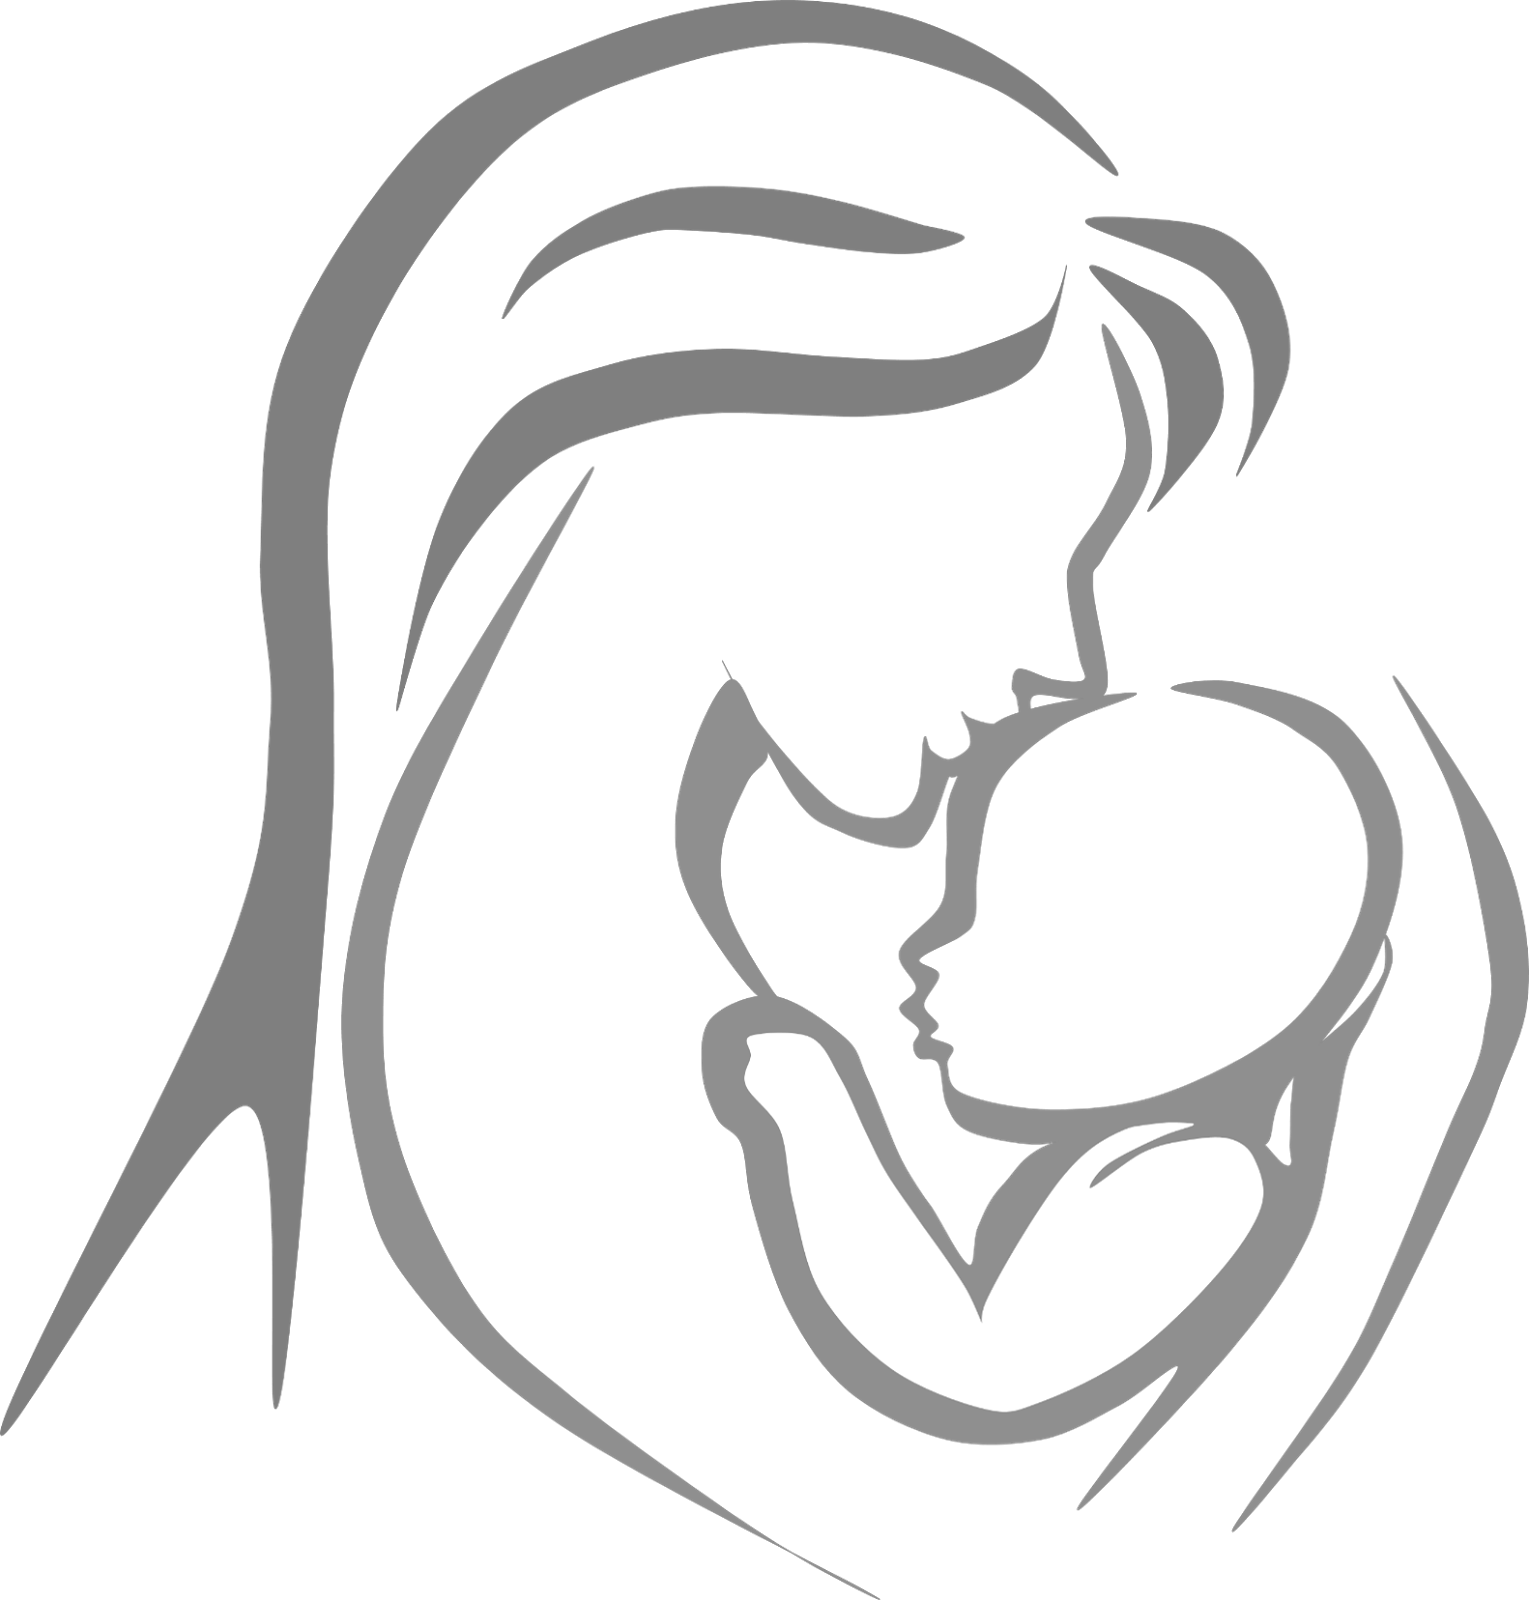 Mom Tattoo Transparent: Mother And Child Outline Clipart